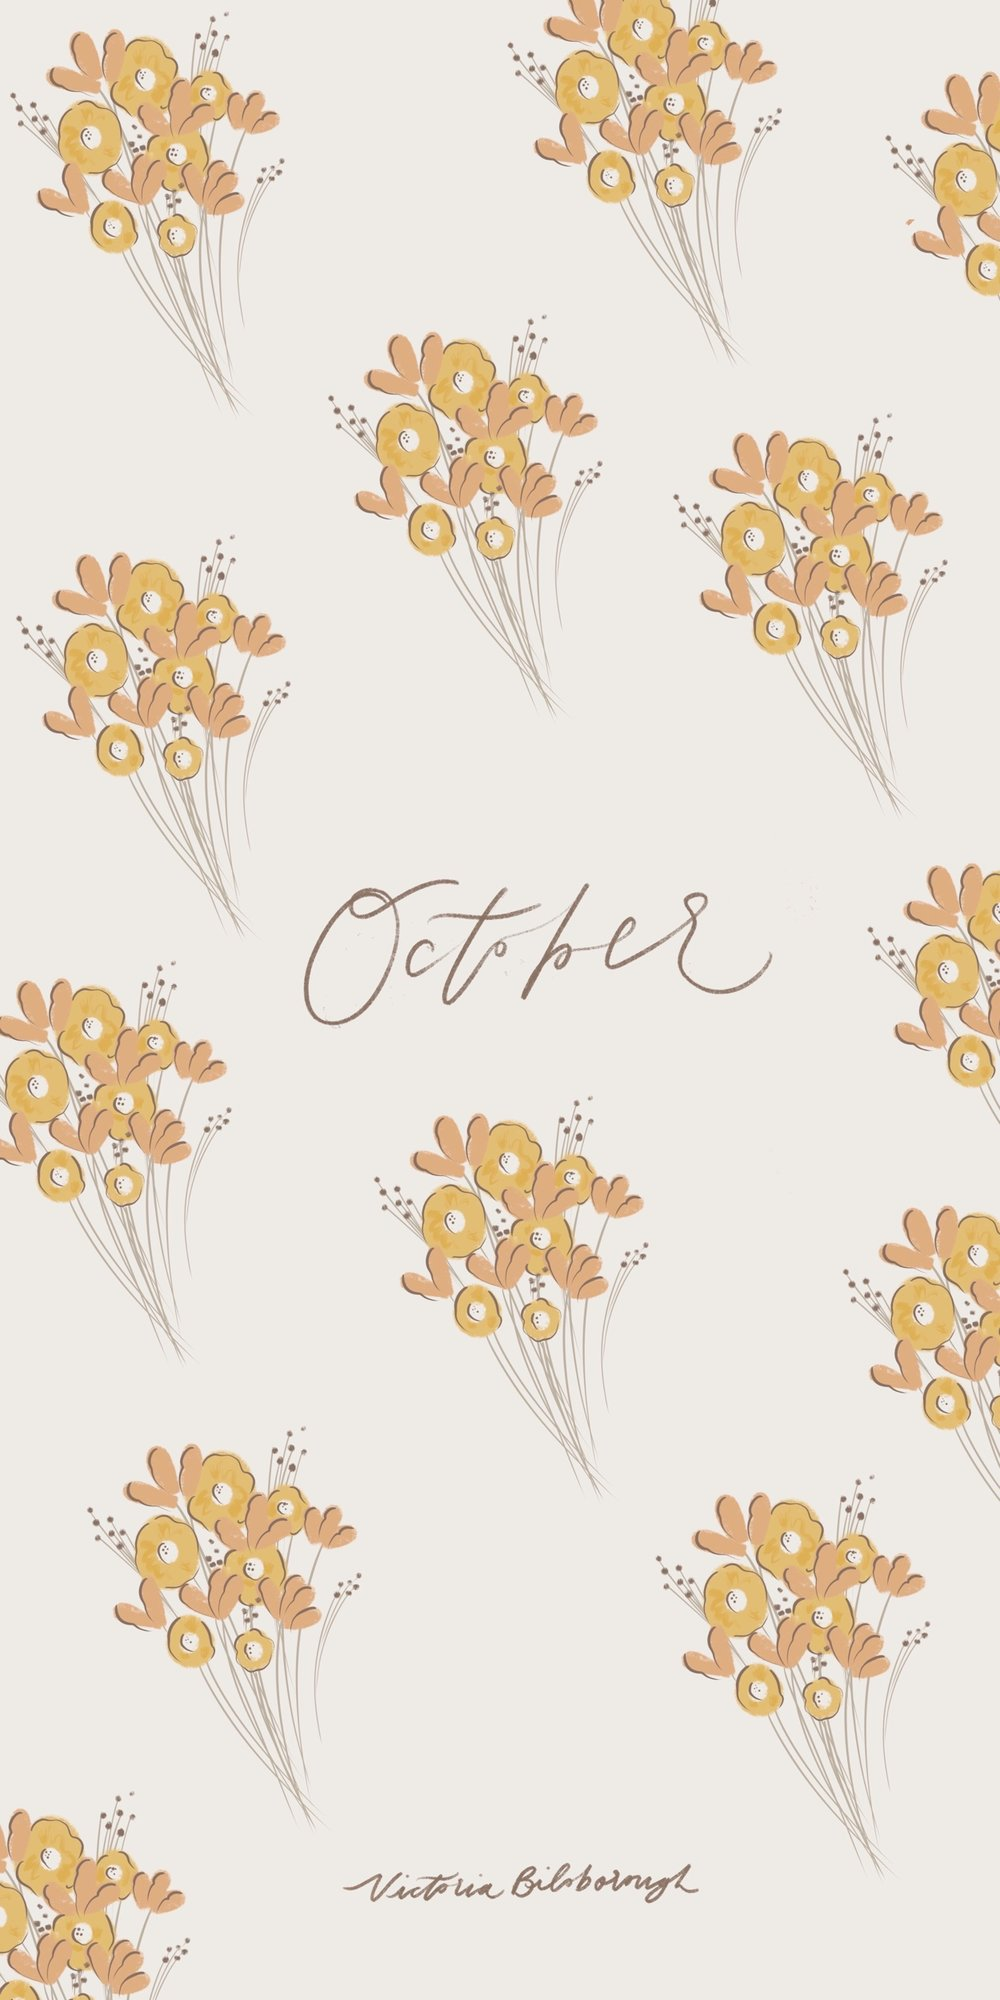 October 2019 Free Wallpapers — Victoria Bilsborough